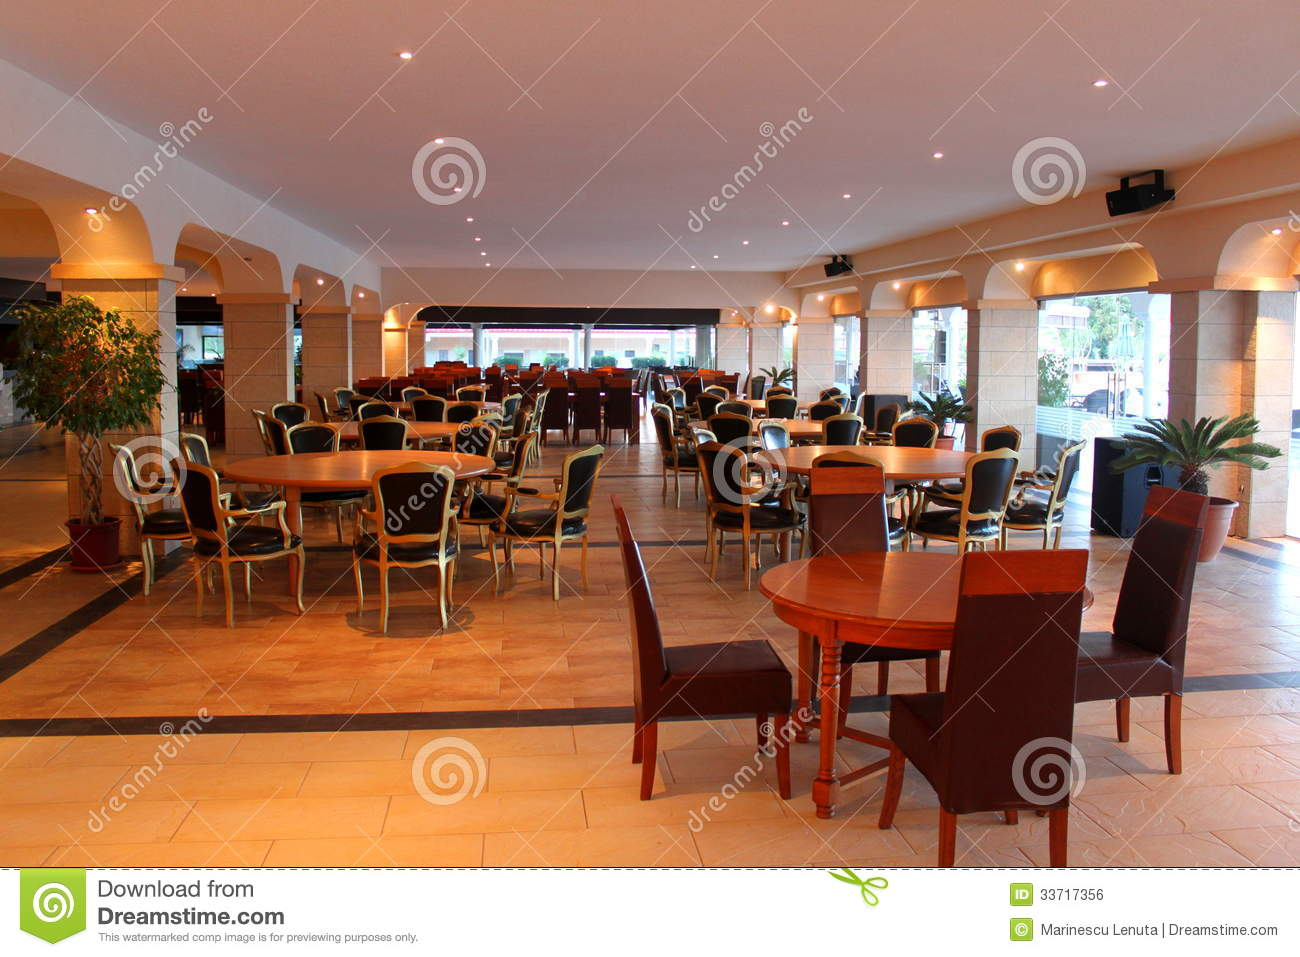 Modern restaurant furniture - Modern Restaurant Furniture Royalty Free Stock Image